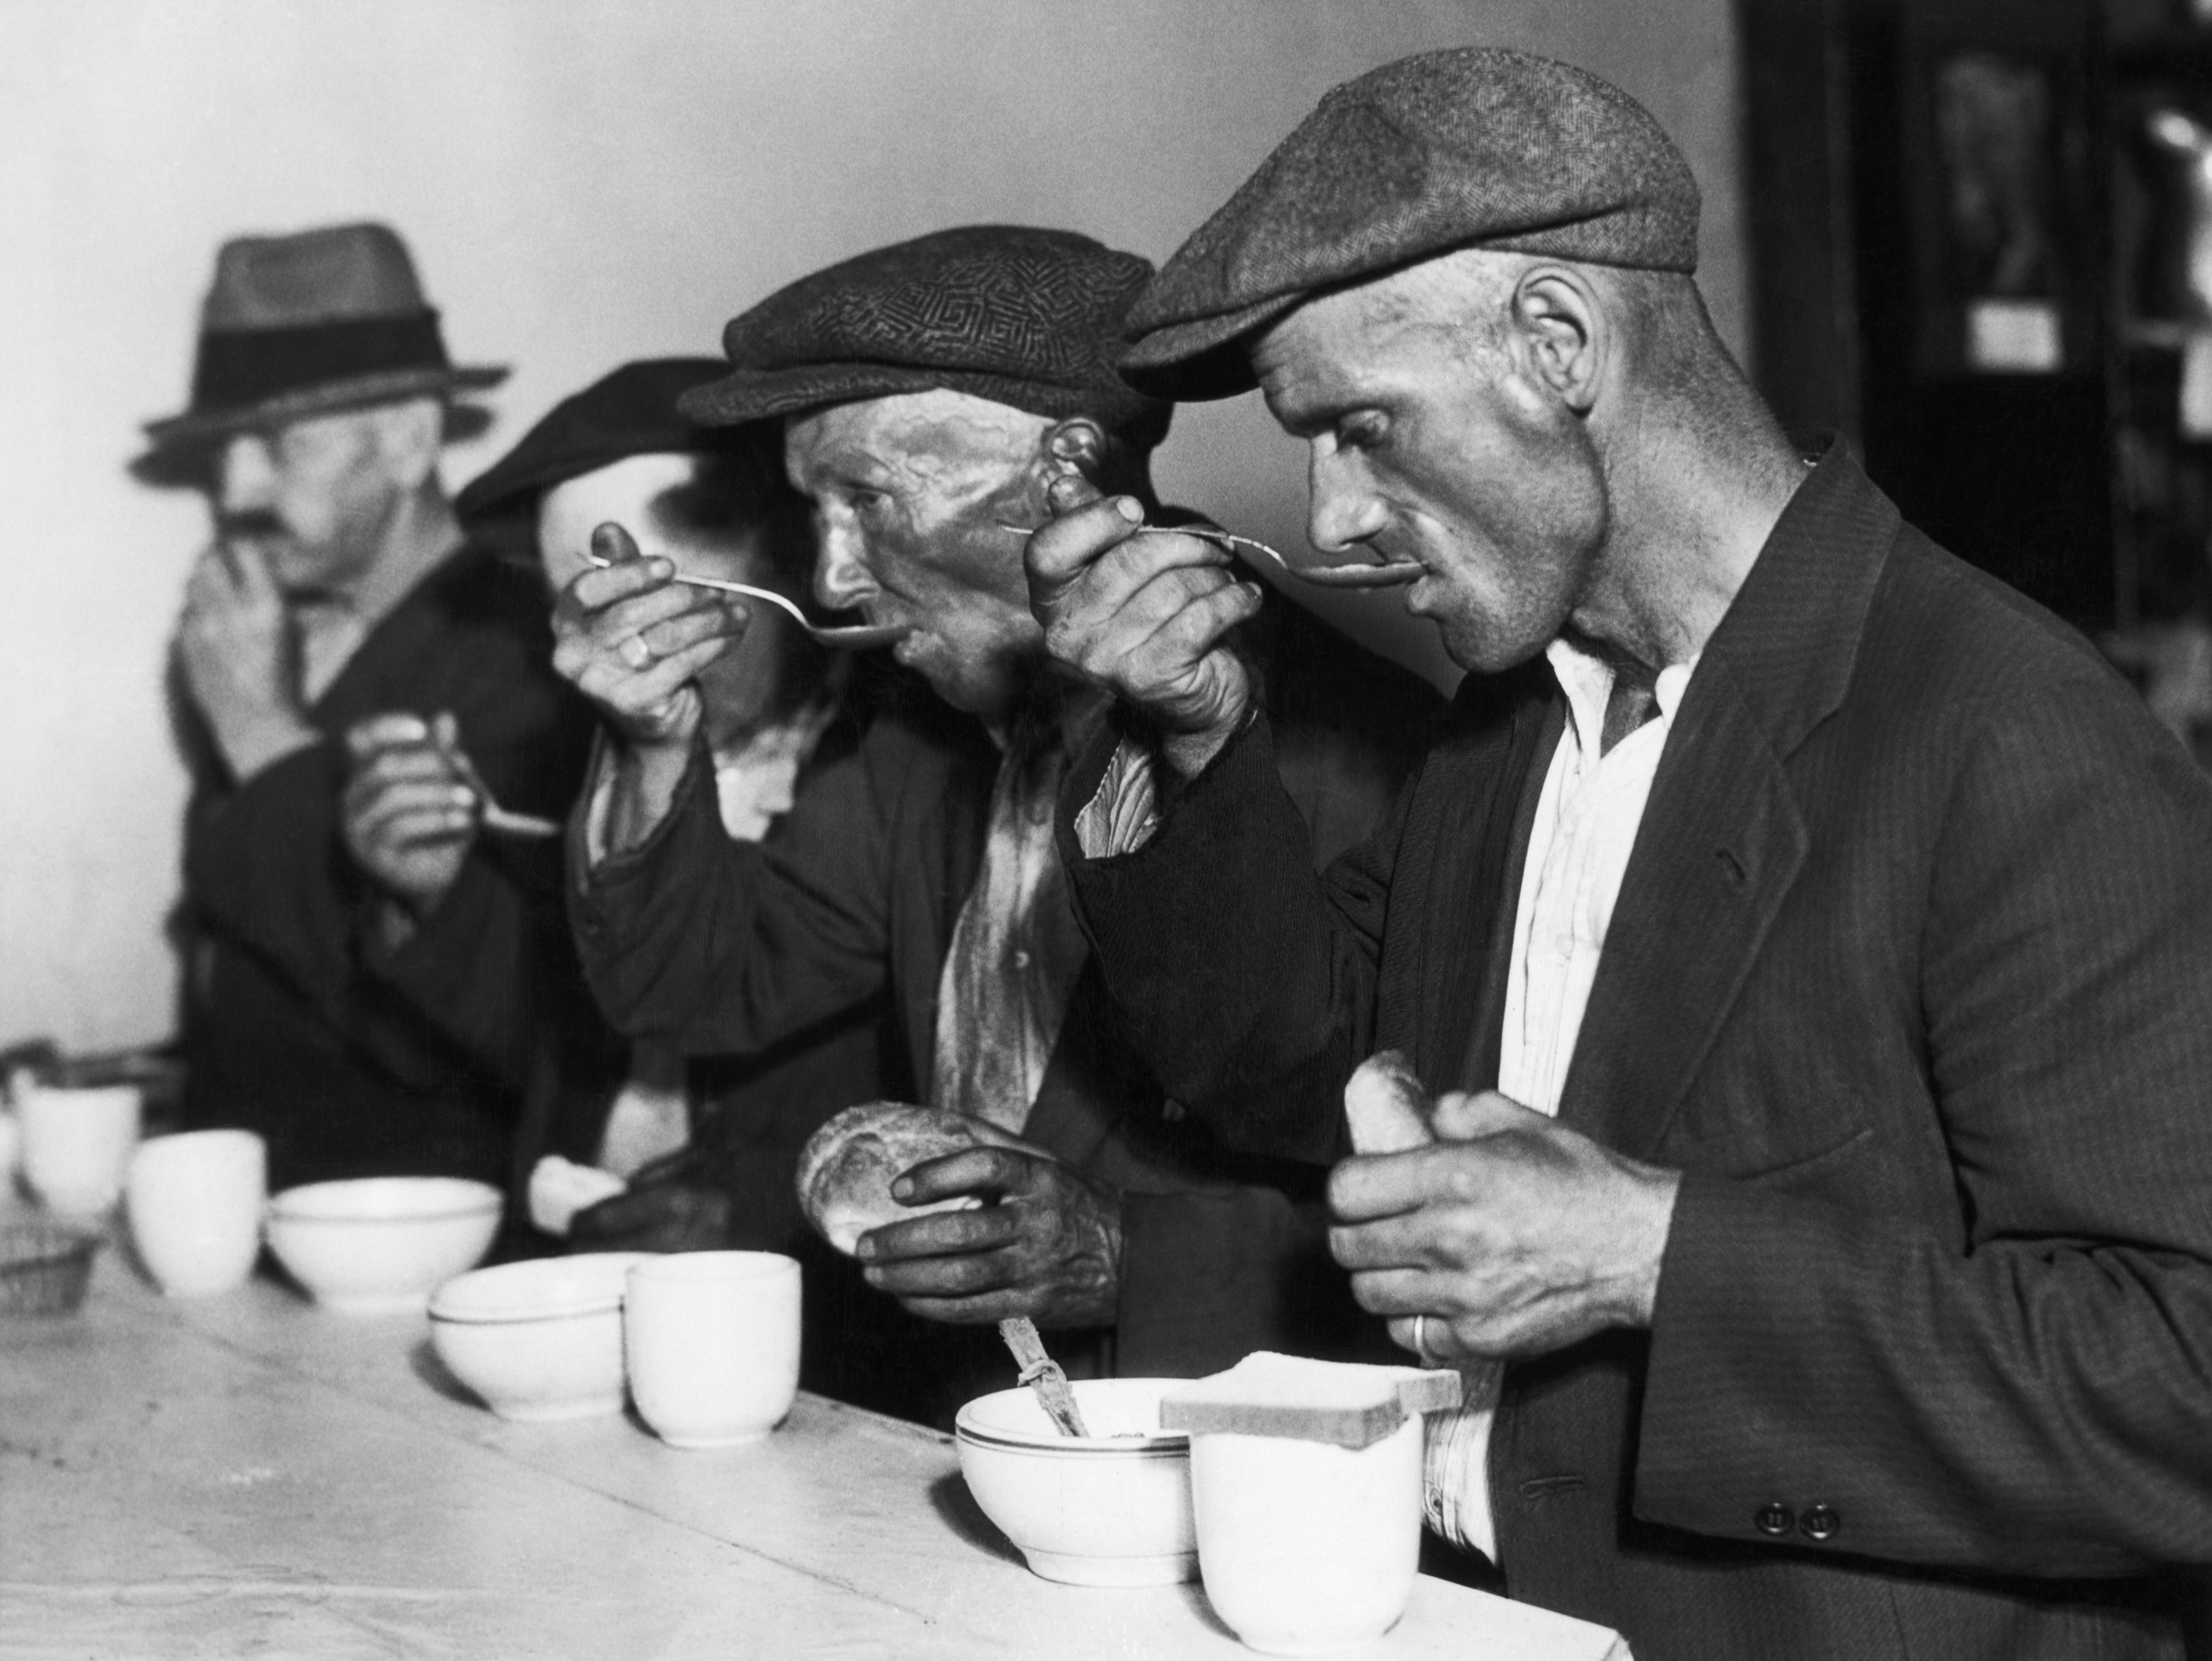 b line in depression era new york soup kitchens and the great depression 1933 americans soup kitchens breadlines unemployment poverty